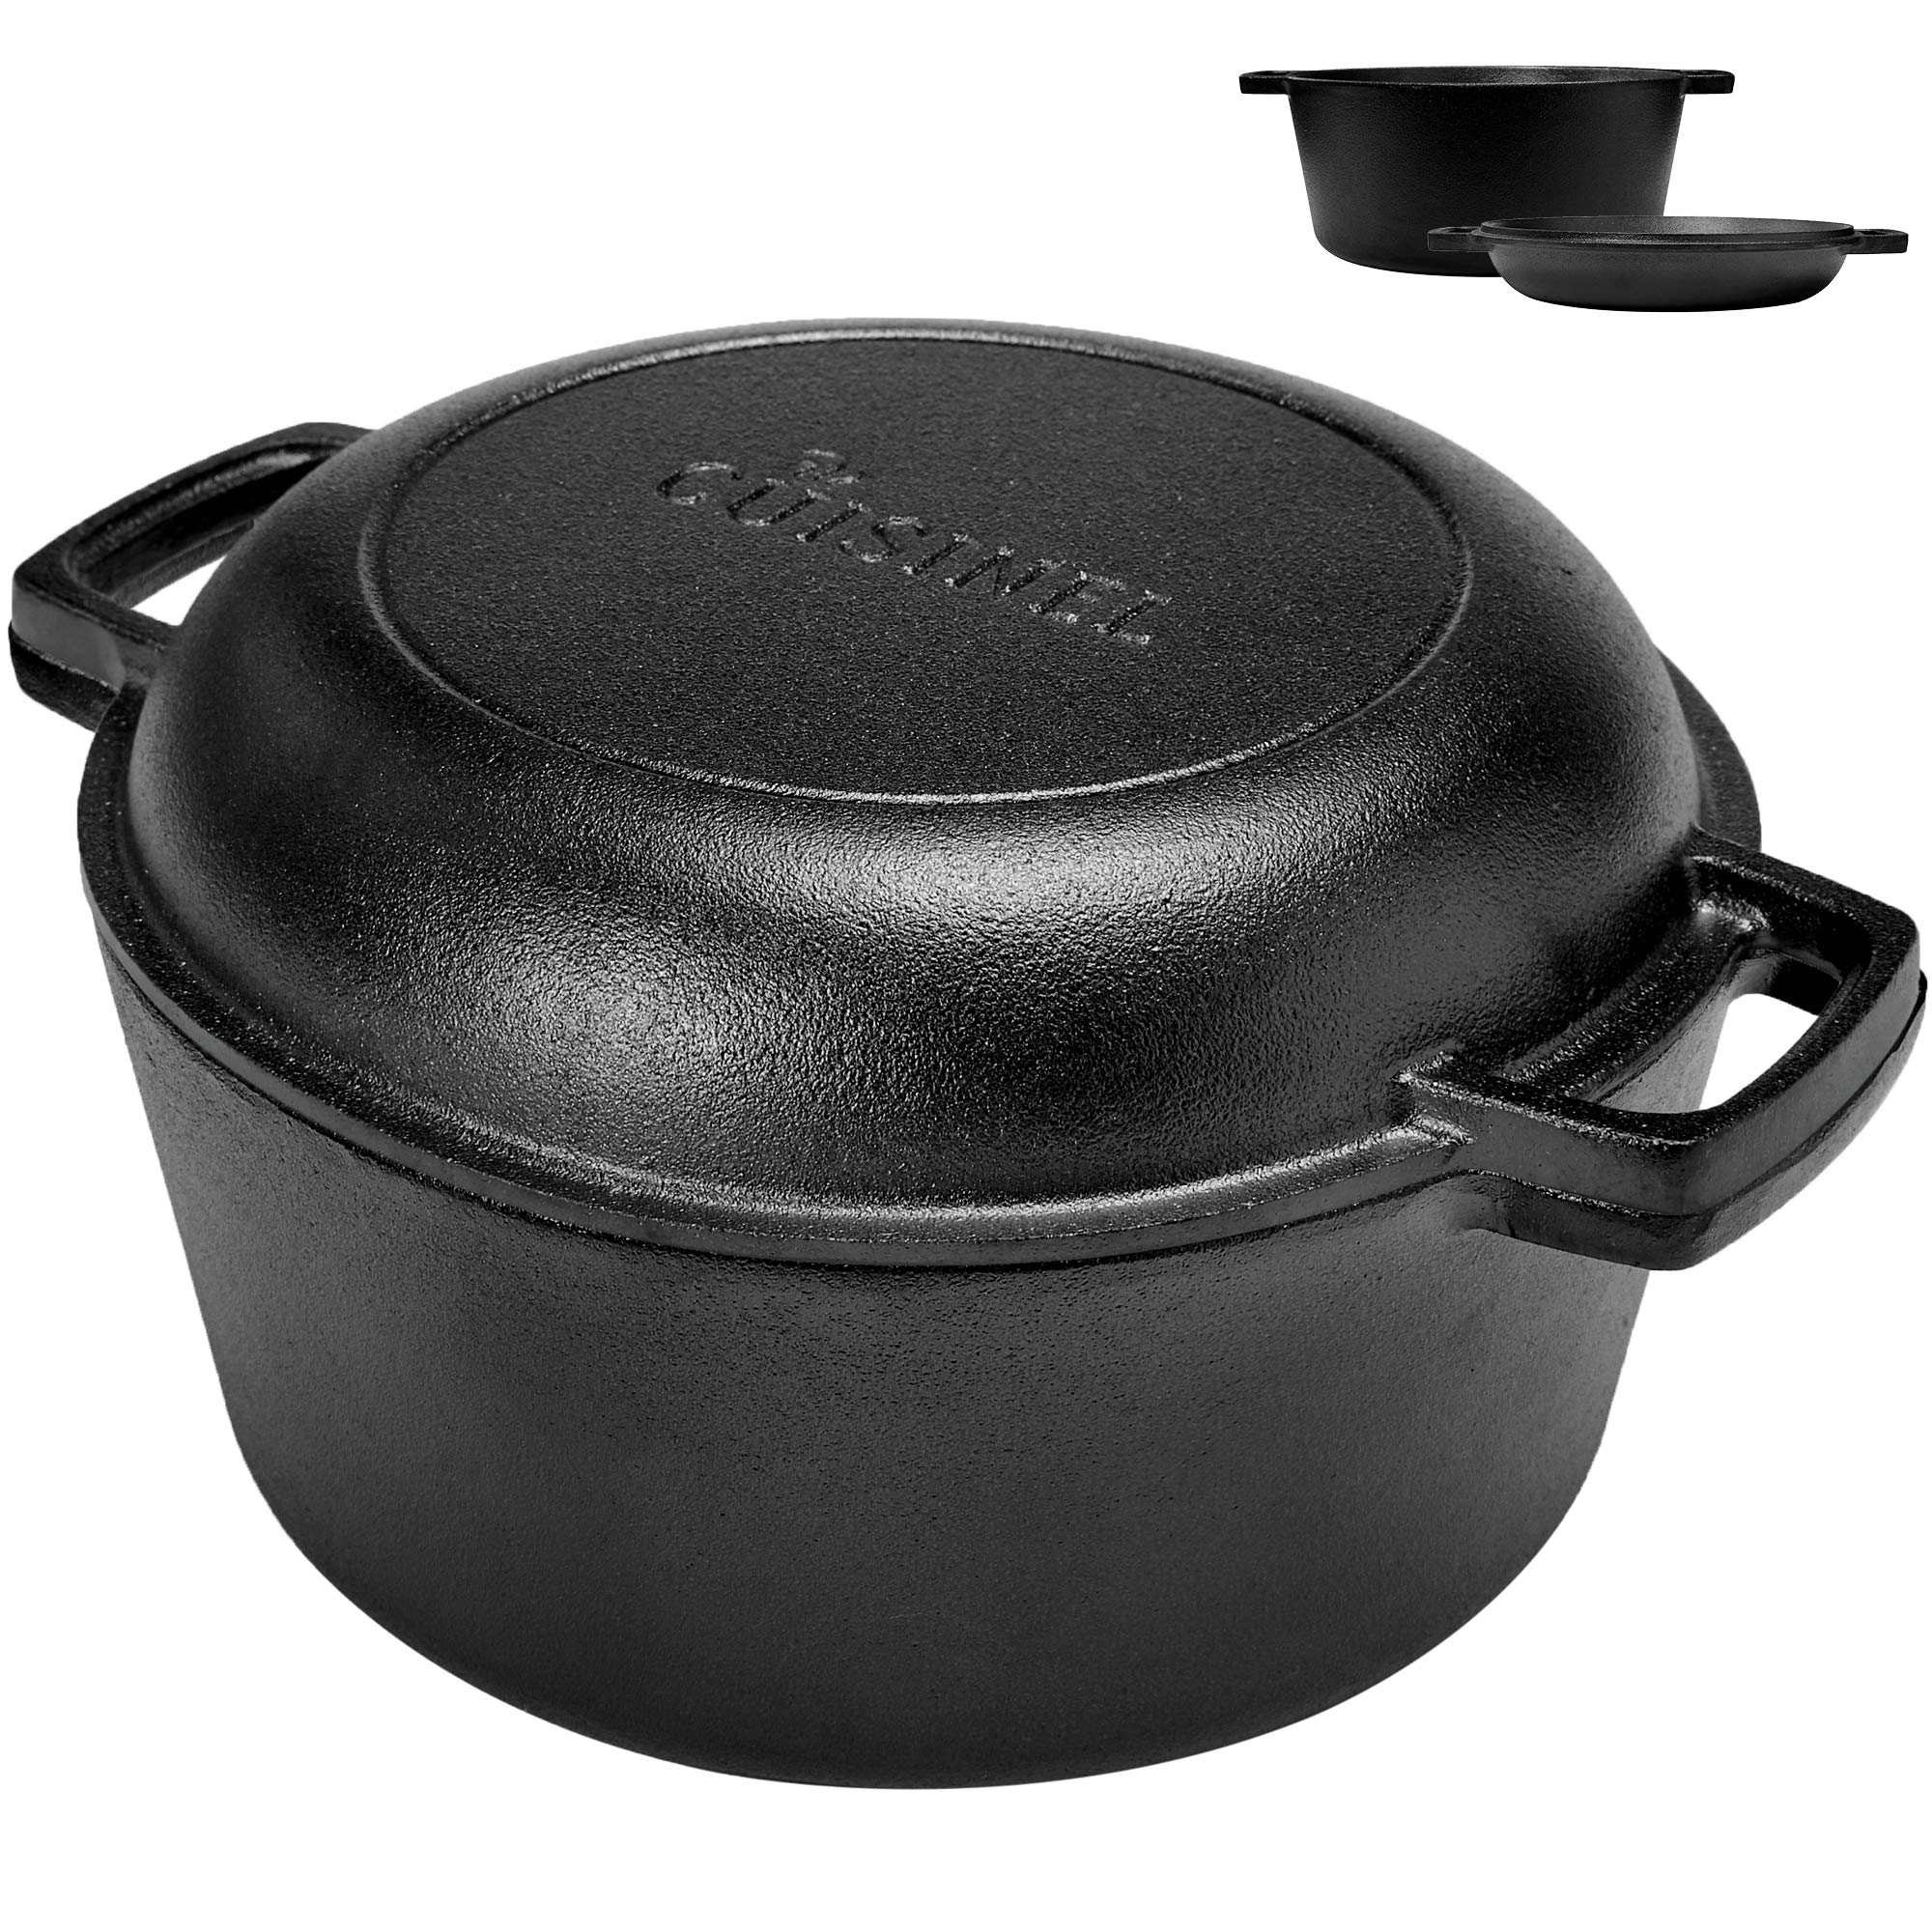 Pre-Seasoned Cast Iron Skillet and Double Dutch Oven Set - 2 In 1 Cooker: 5 Quart Deep Pan, 10-Inch Frying Pan Converts to Lid for Dutch Oven - Grill, Stove Top and Induction Safe by cuisinel